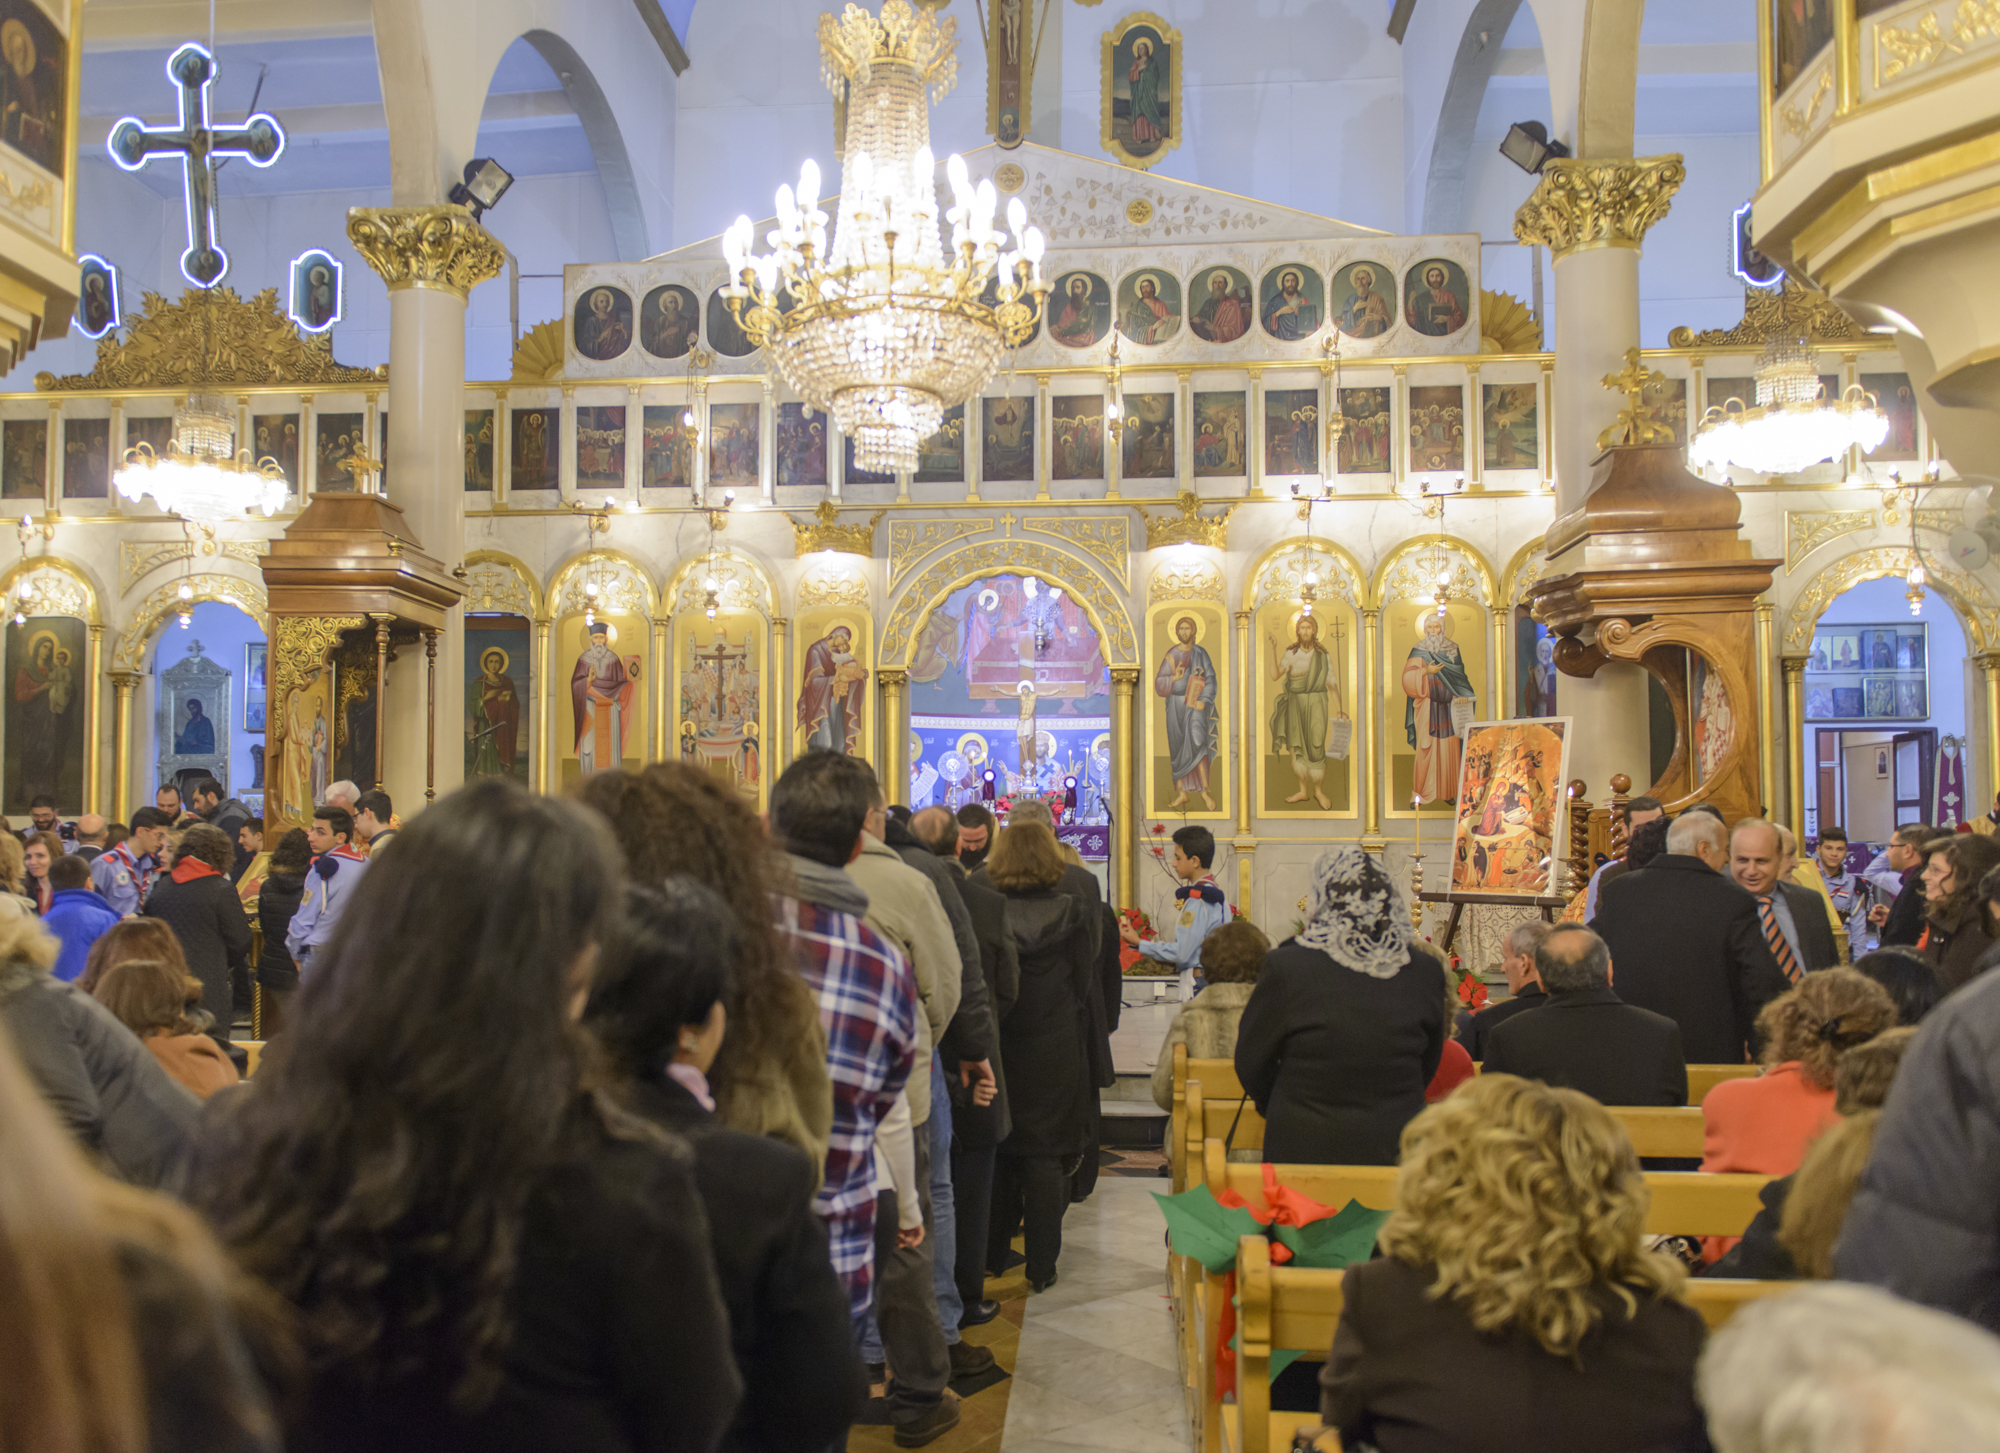 Christmas service in an Antiochia cathedral in Damascus, Syria.